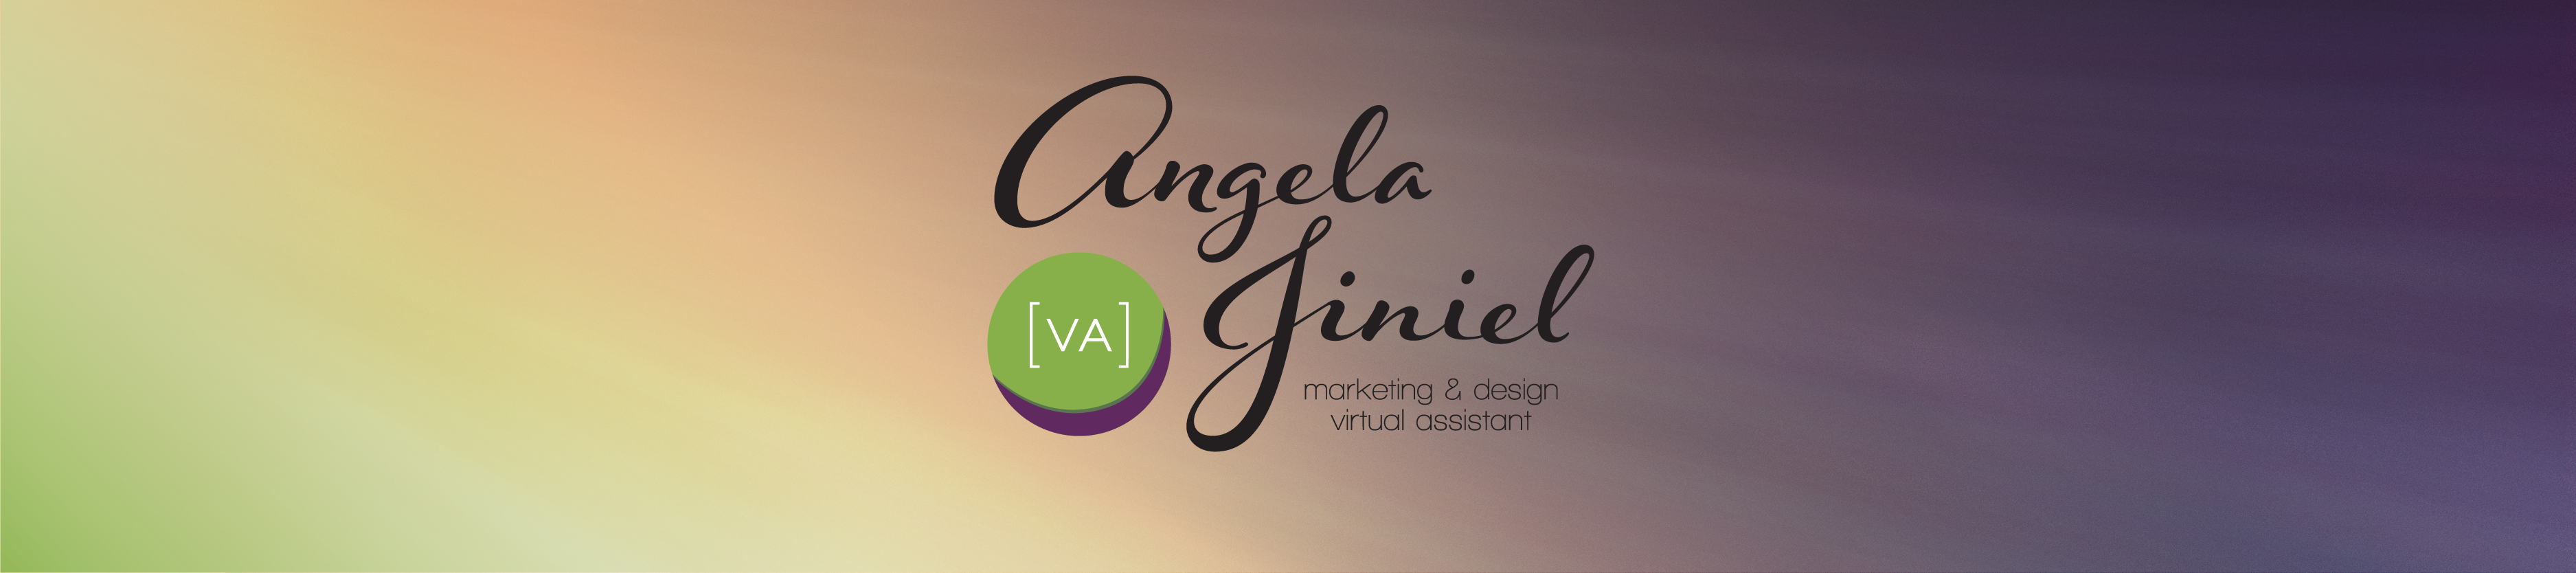 Angela Jiniel Marketing & Design VA